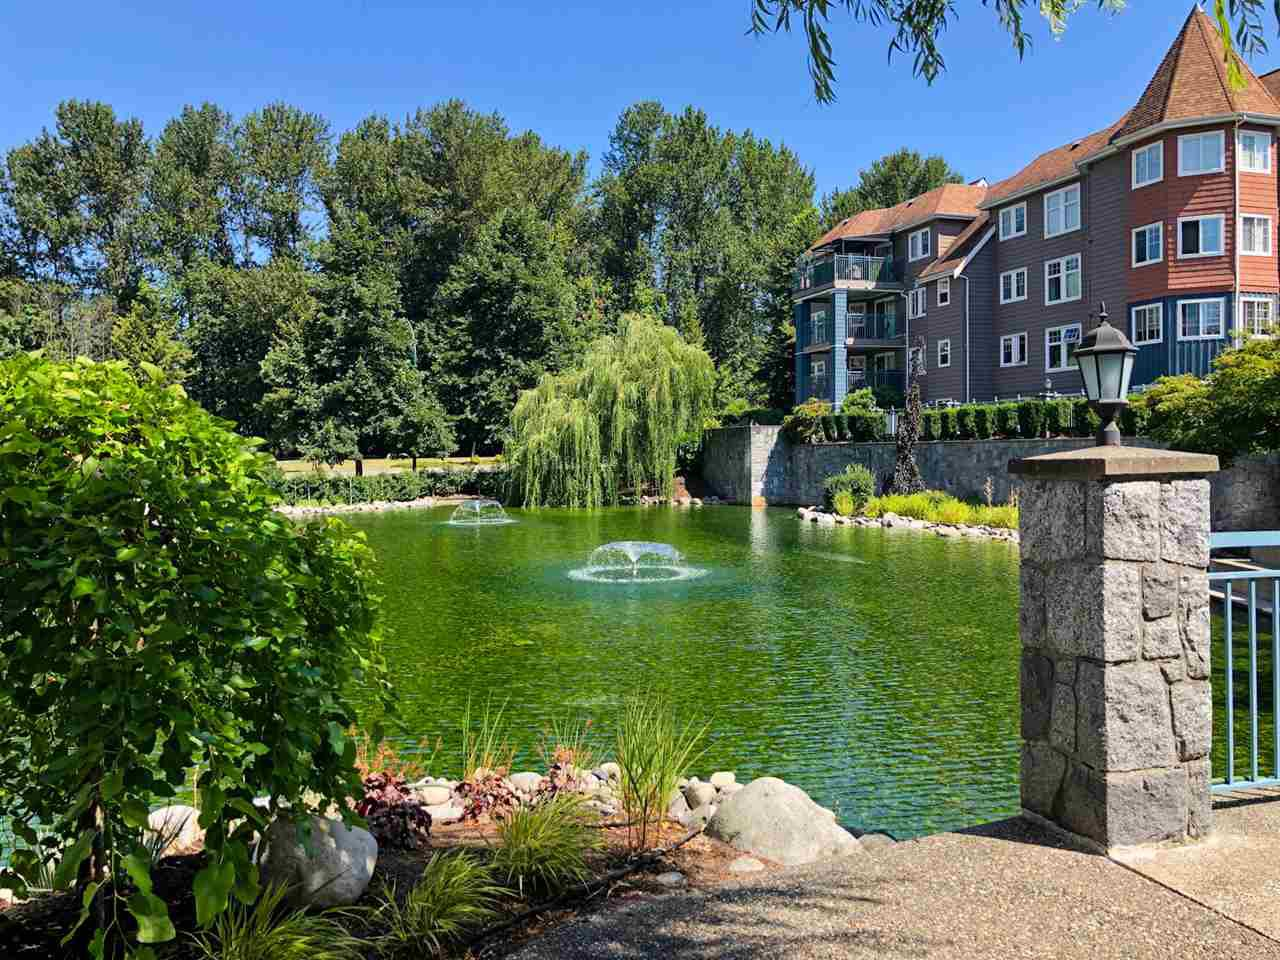 """Main Photo: 301 1190 EASTWOOD Street in Coquitlam: North Coquitlam Condo for sale in """"LAKESIDE TERRACE"""" : MLS®# R2407650"""